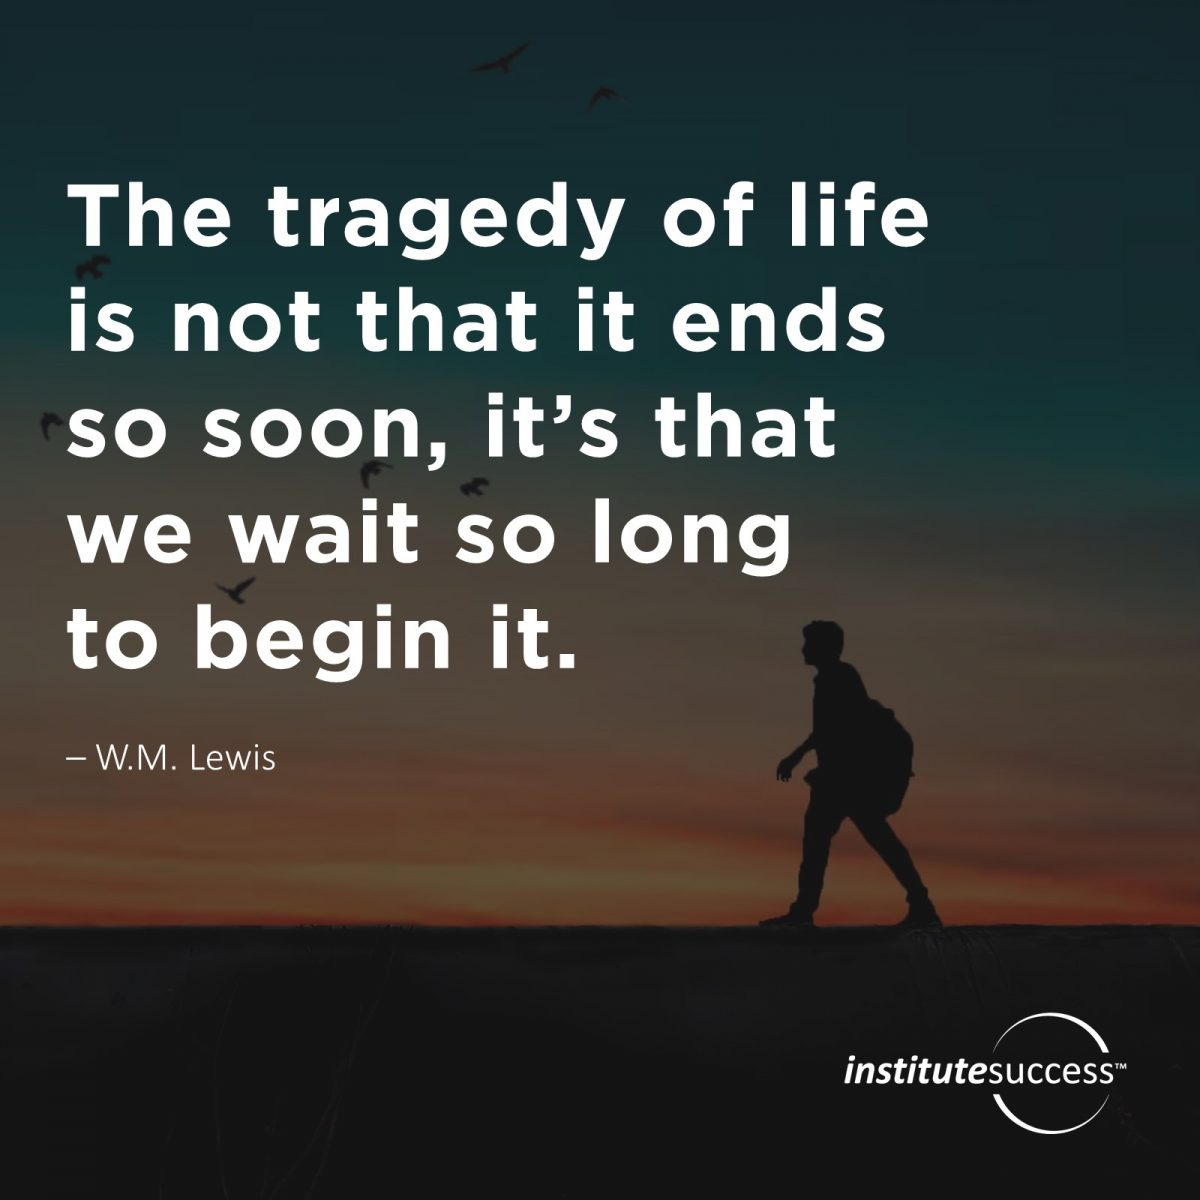 The tragedy of life is not that it ends so soon, it's that we wait so long to begin it. – W.M. Lewi